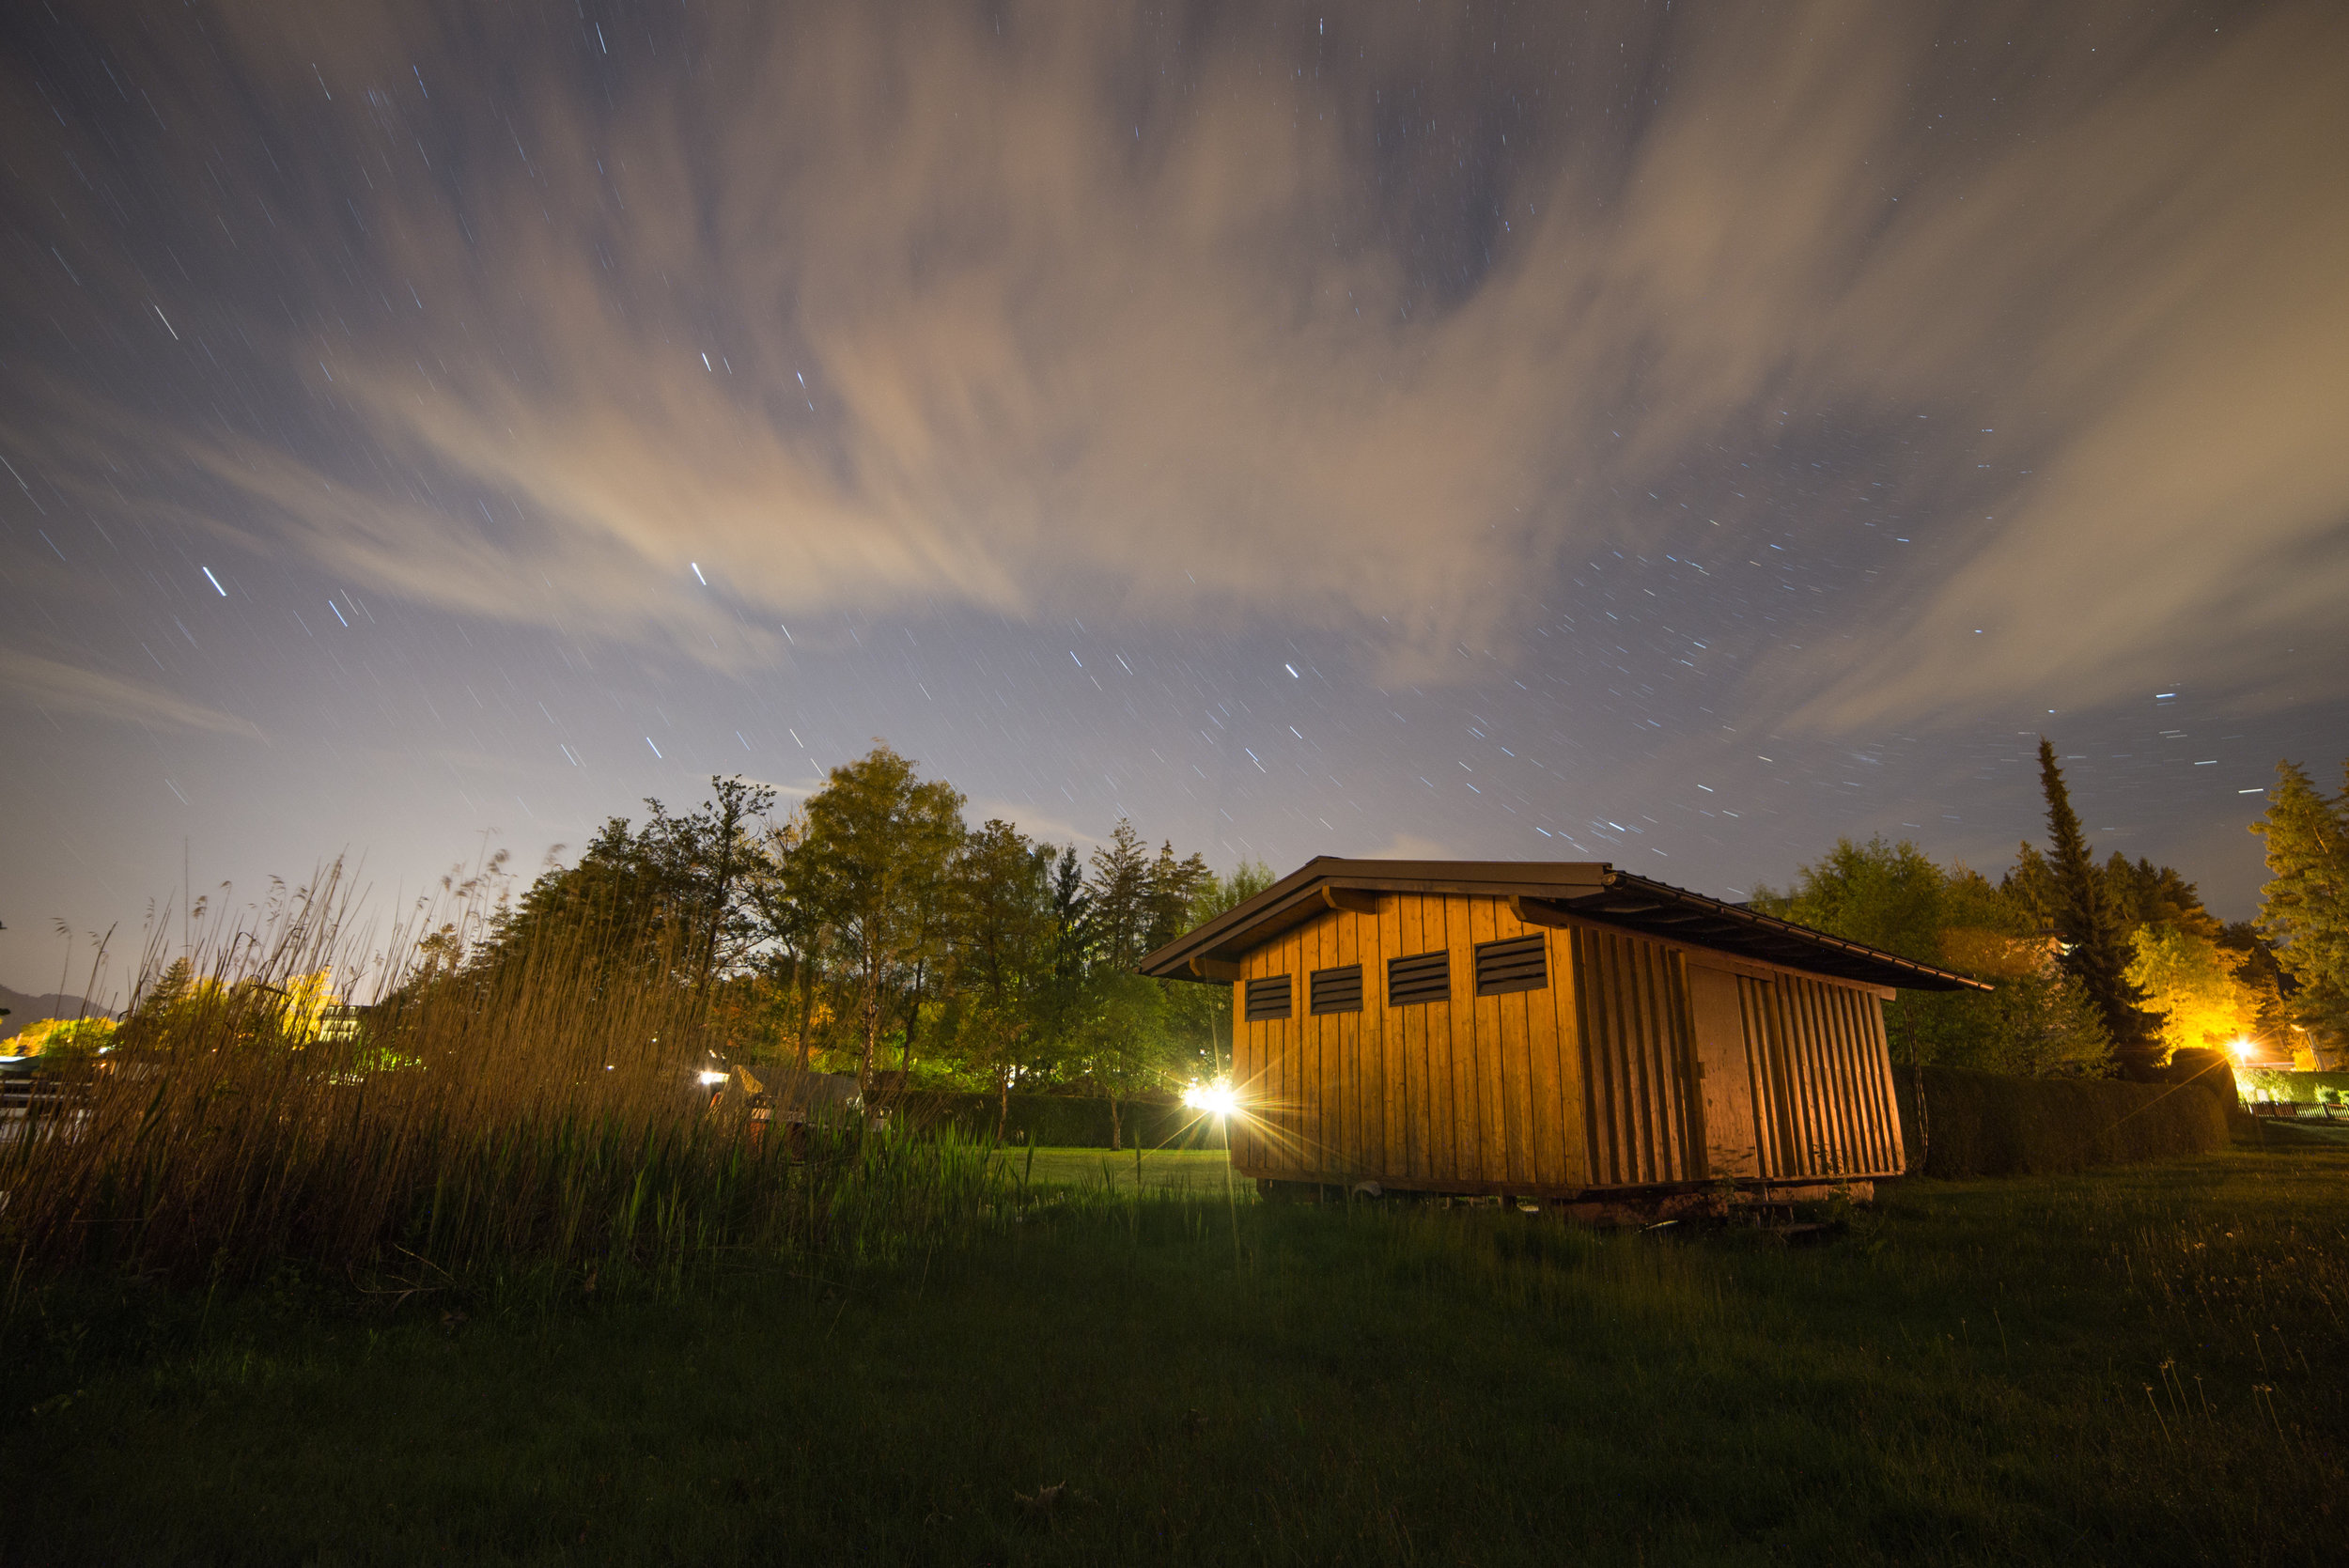 Here's a 5min exposure of some stars over a barn.